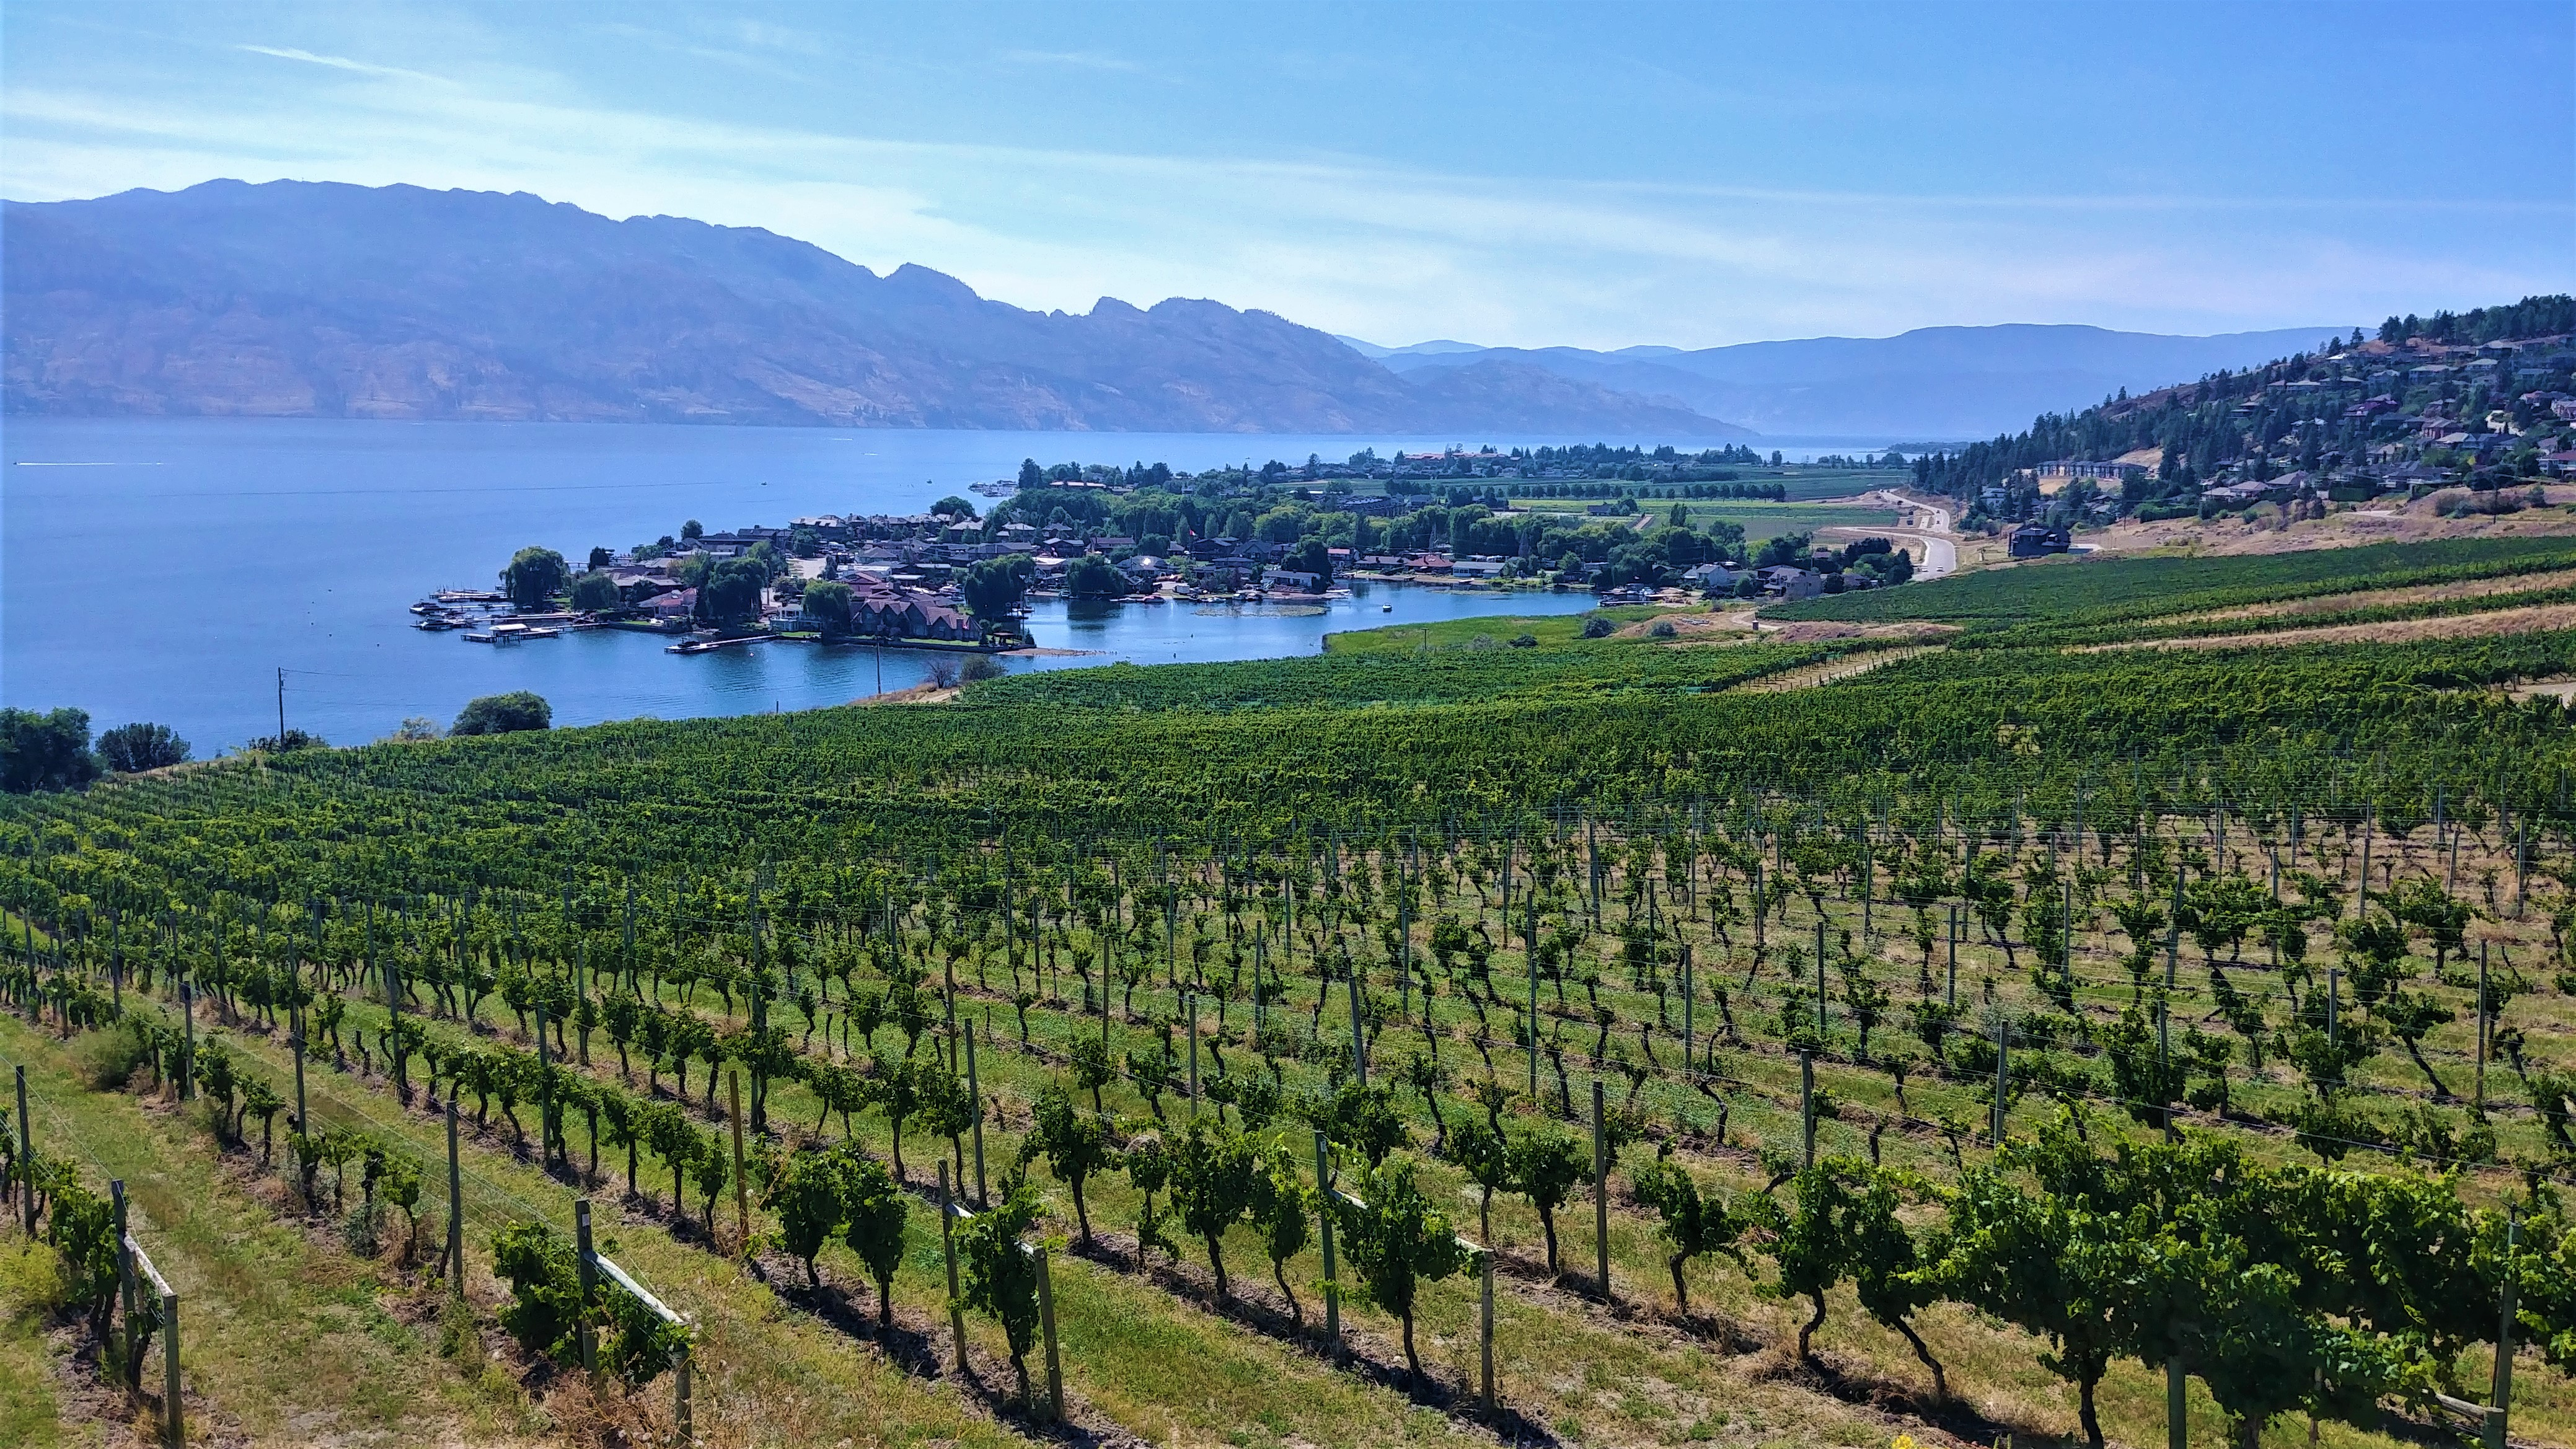 Kelowna vignoble quails gate lake country blog voyage road-trip rocheuses ouest canada arpenter le chemin